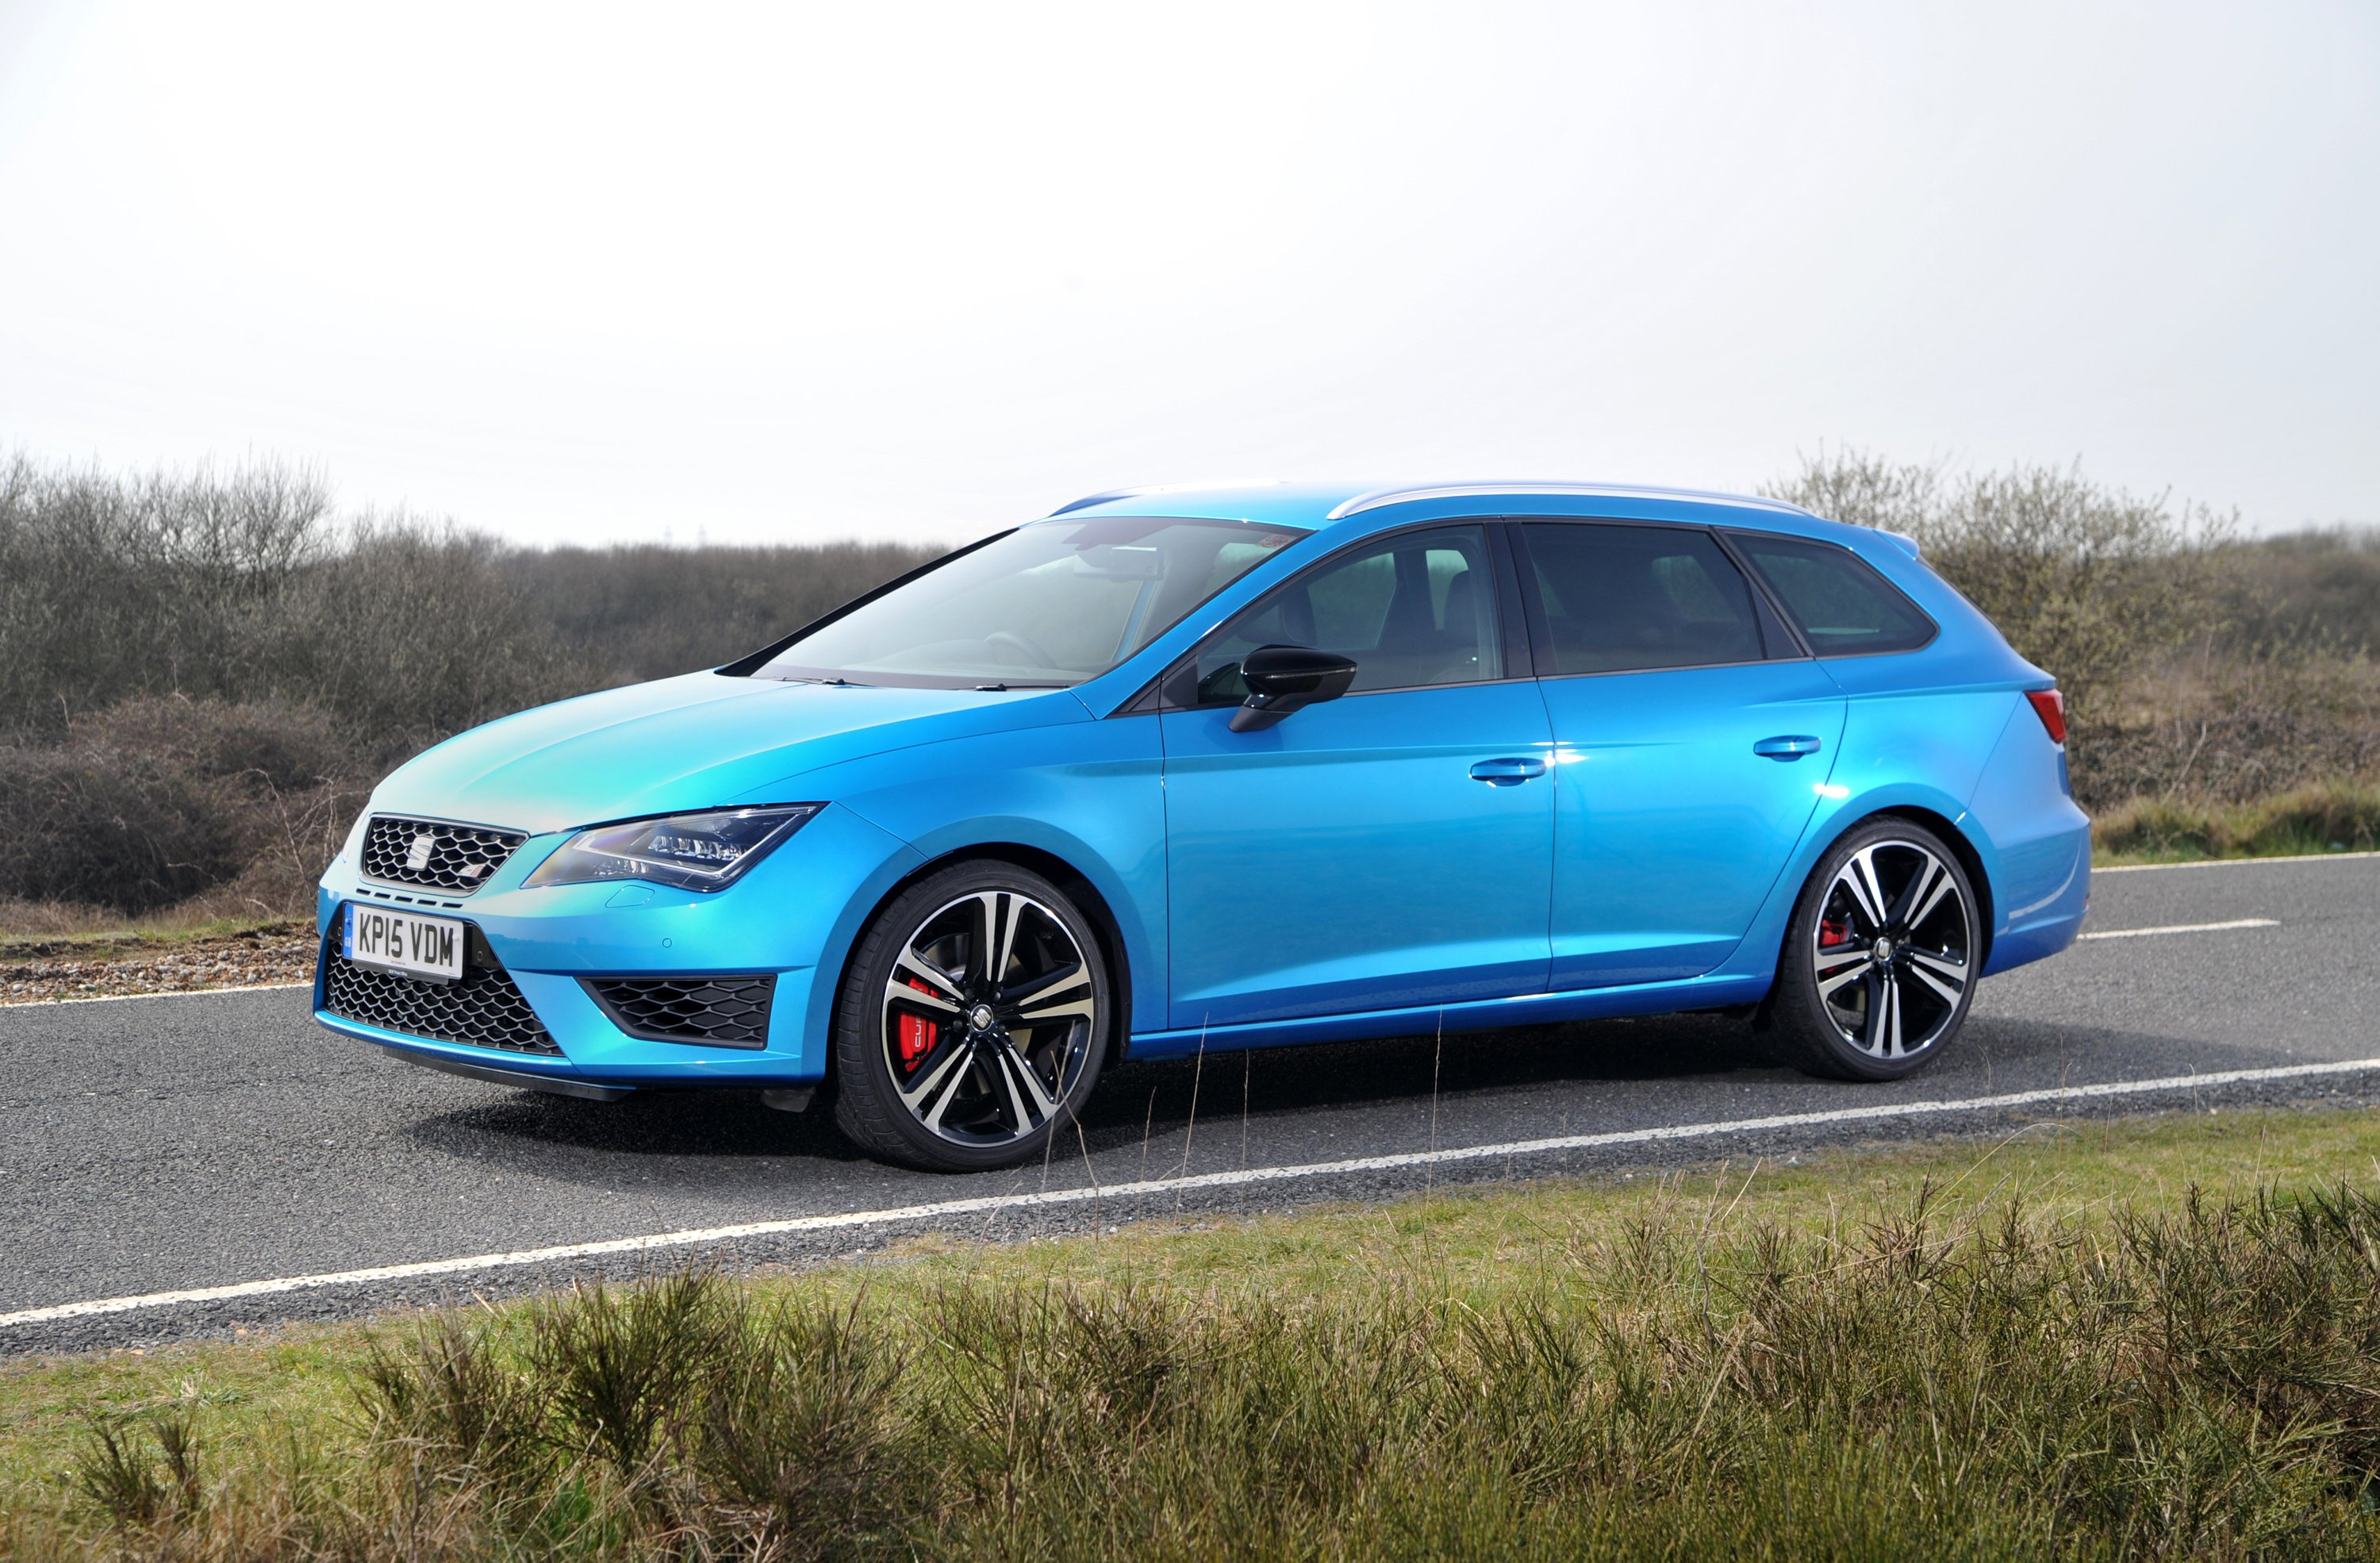 seat leon st cupra 280 uk spec cars wagon 2015 wallpaper 3000x1970 661924 wallpaperup. Black Bedroom Furniture Sets. Home Design Ideas